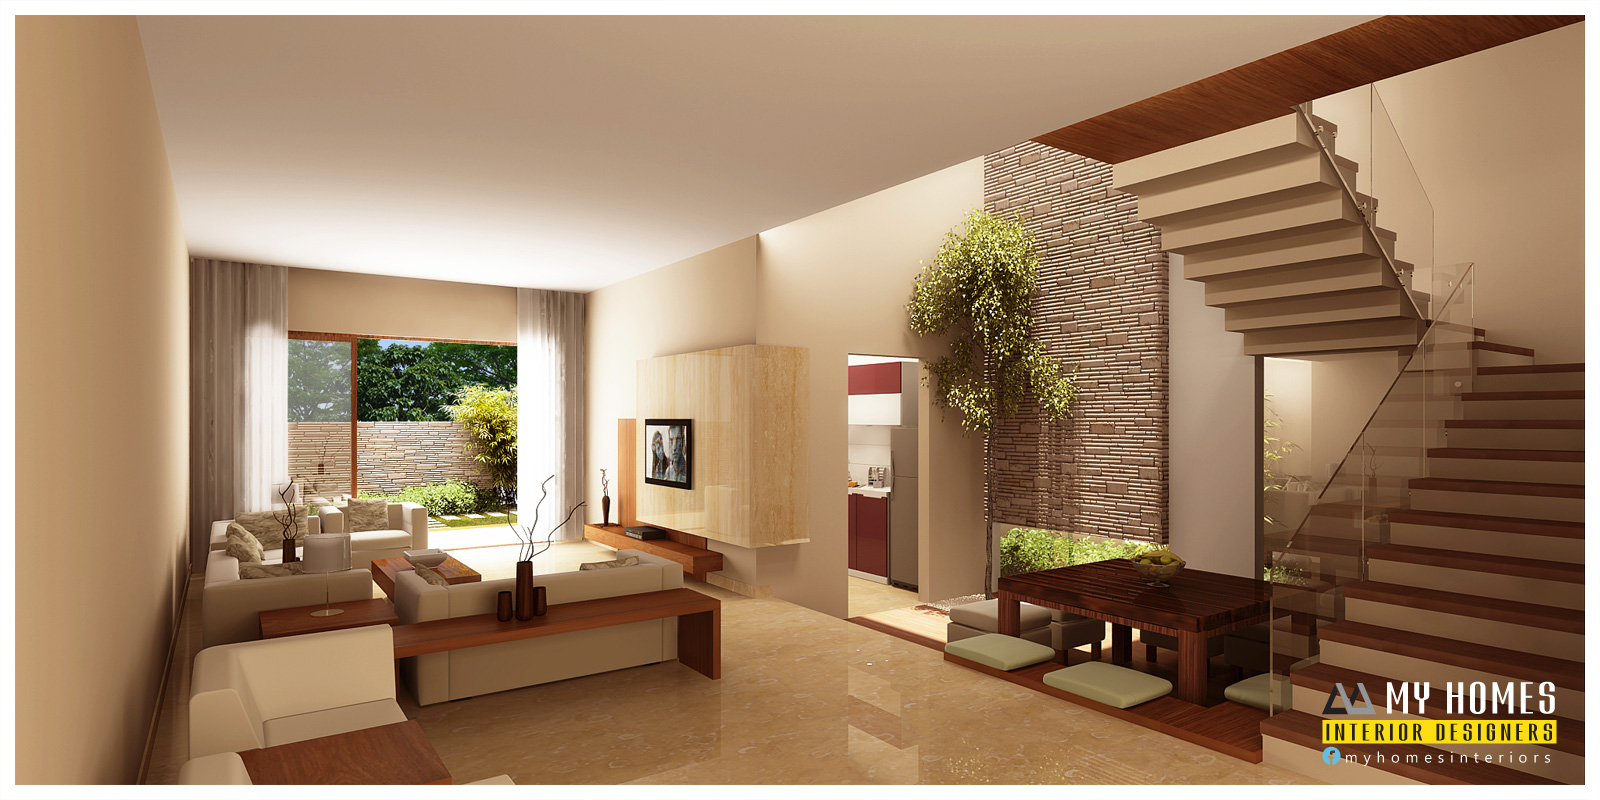 Kerala interior design ideas from designing company thrissur - Home designs interior ...